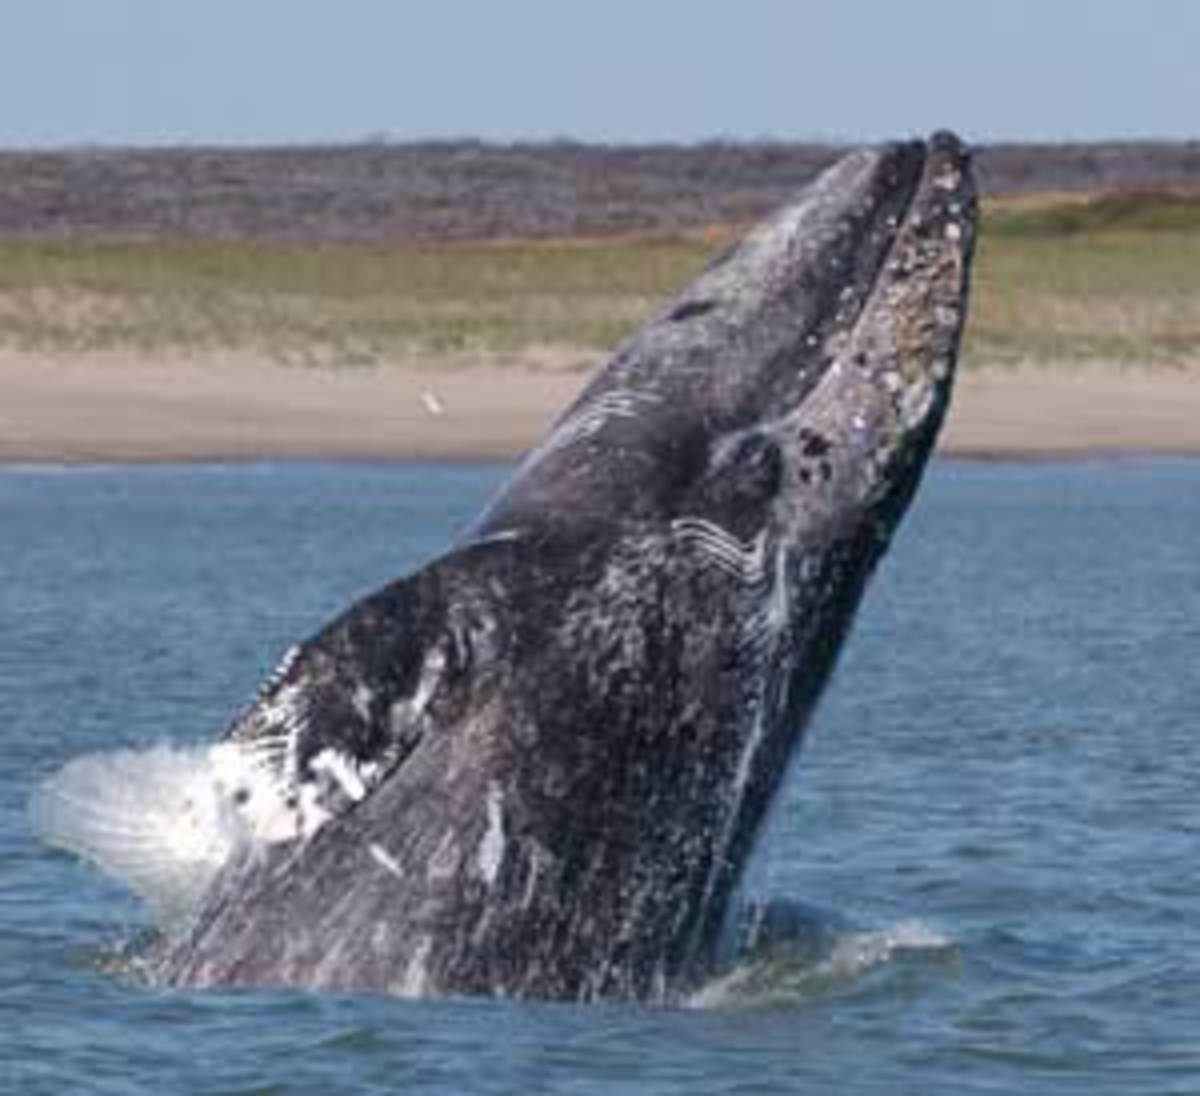 New wind-energy endeavors could be harmful to whales, so scientists are testing a new sonar technology to reroute migrating whales. (Dave Weller / ICUN)